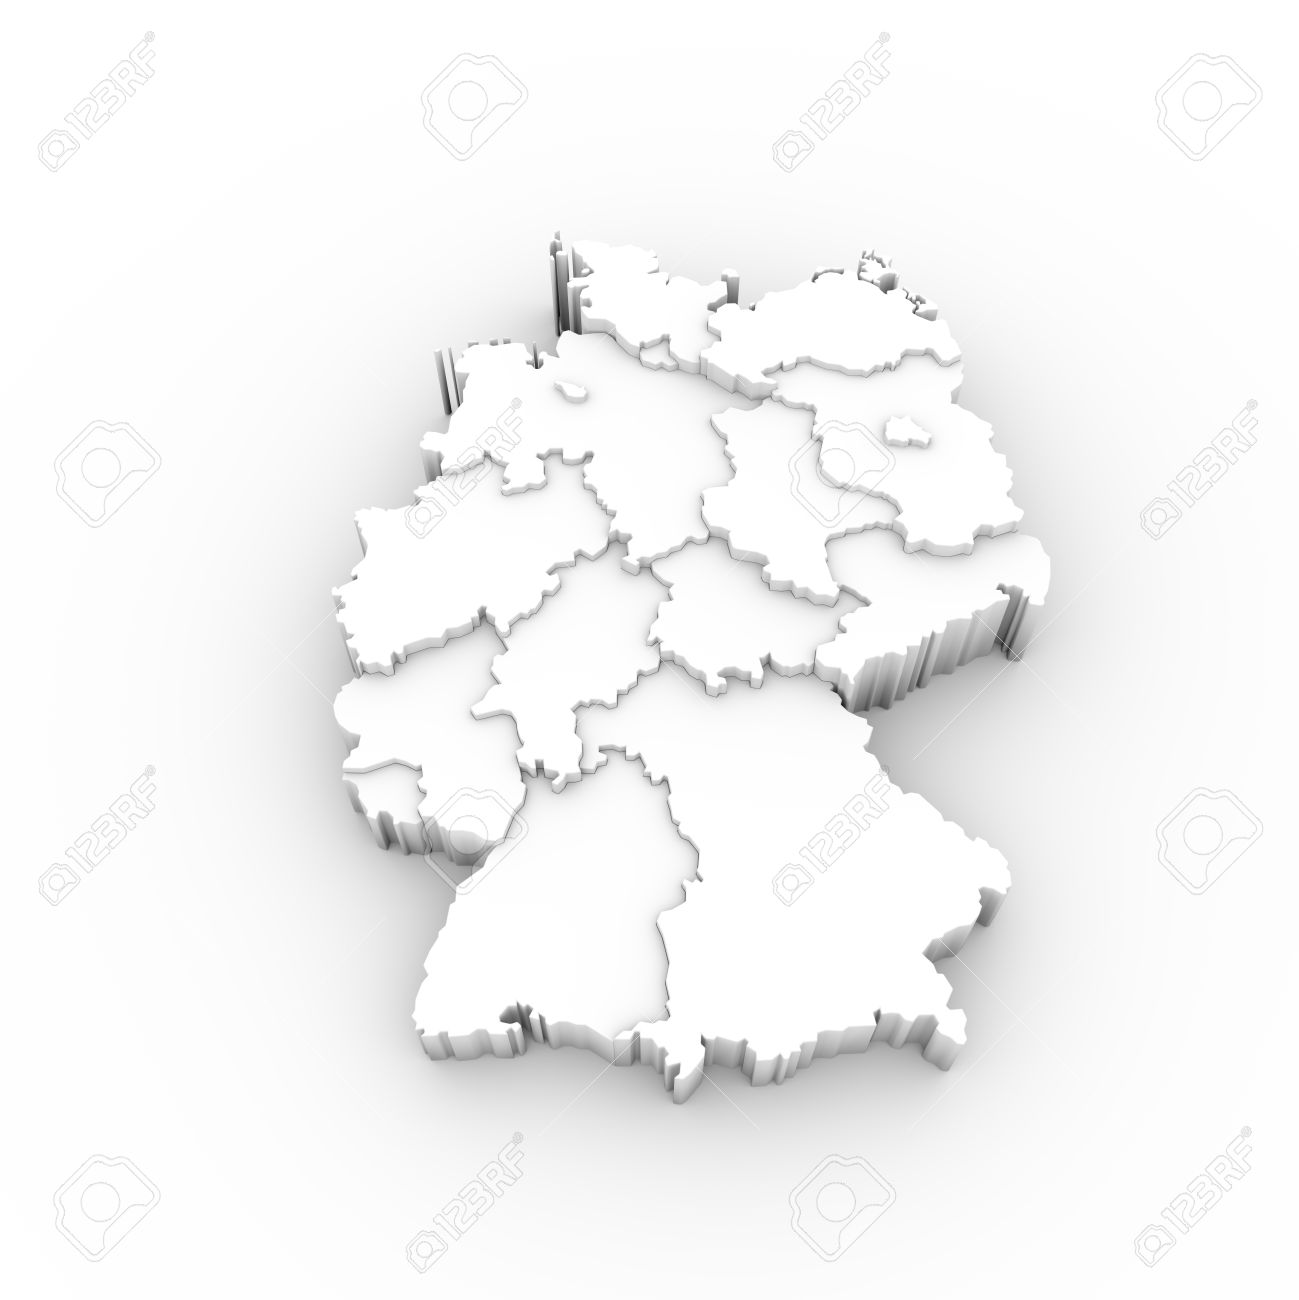 Map Of Germany 3d.Germany Map 3d White With States Stepwise And Clipping Path Stock